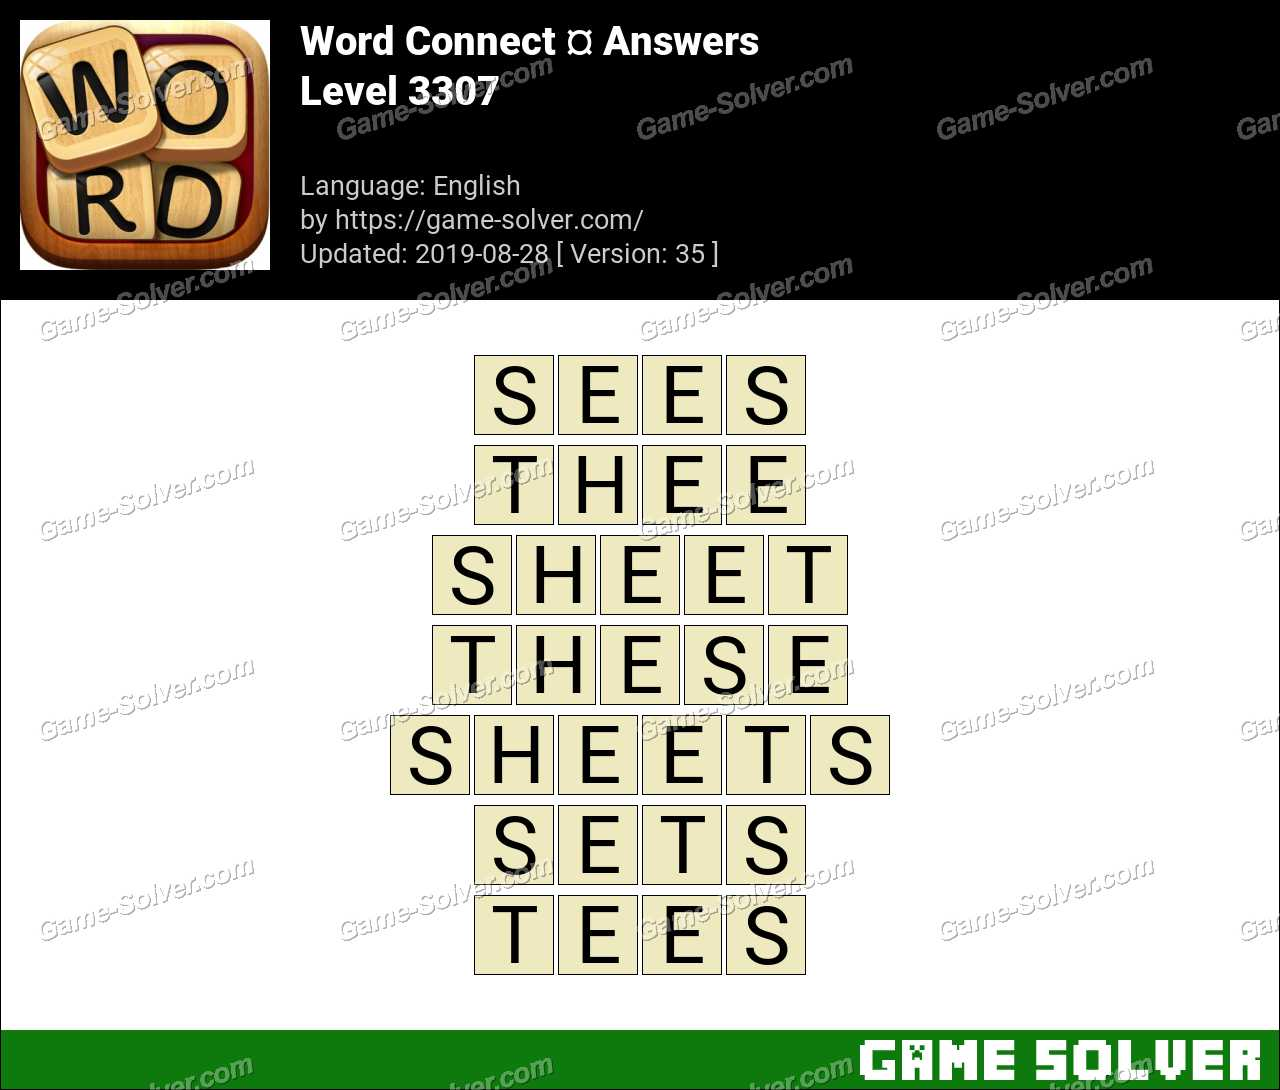 Word Connect Level 3307 Answers